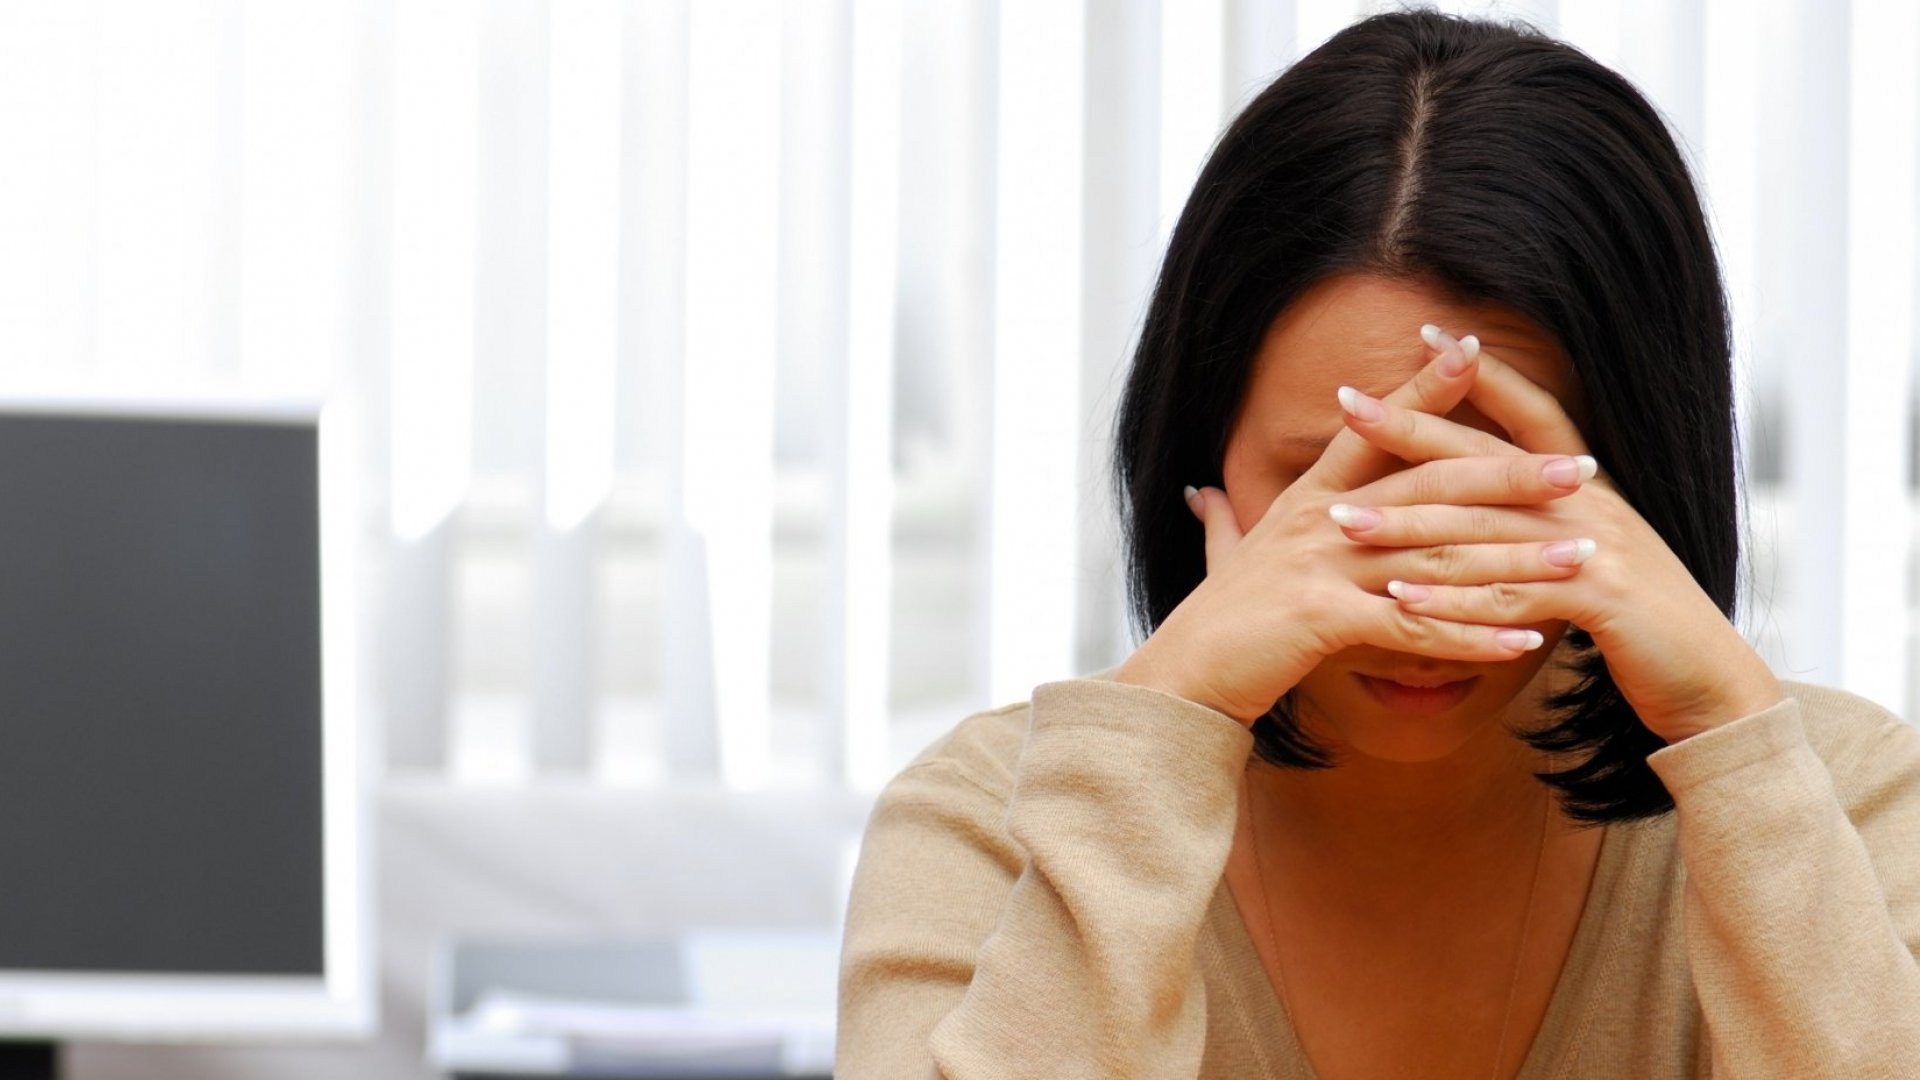 Your Career Has Stalled, and It's All Your Fault